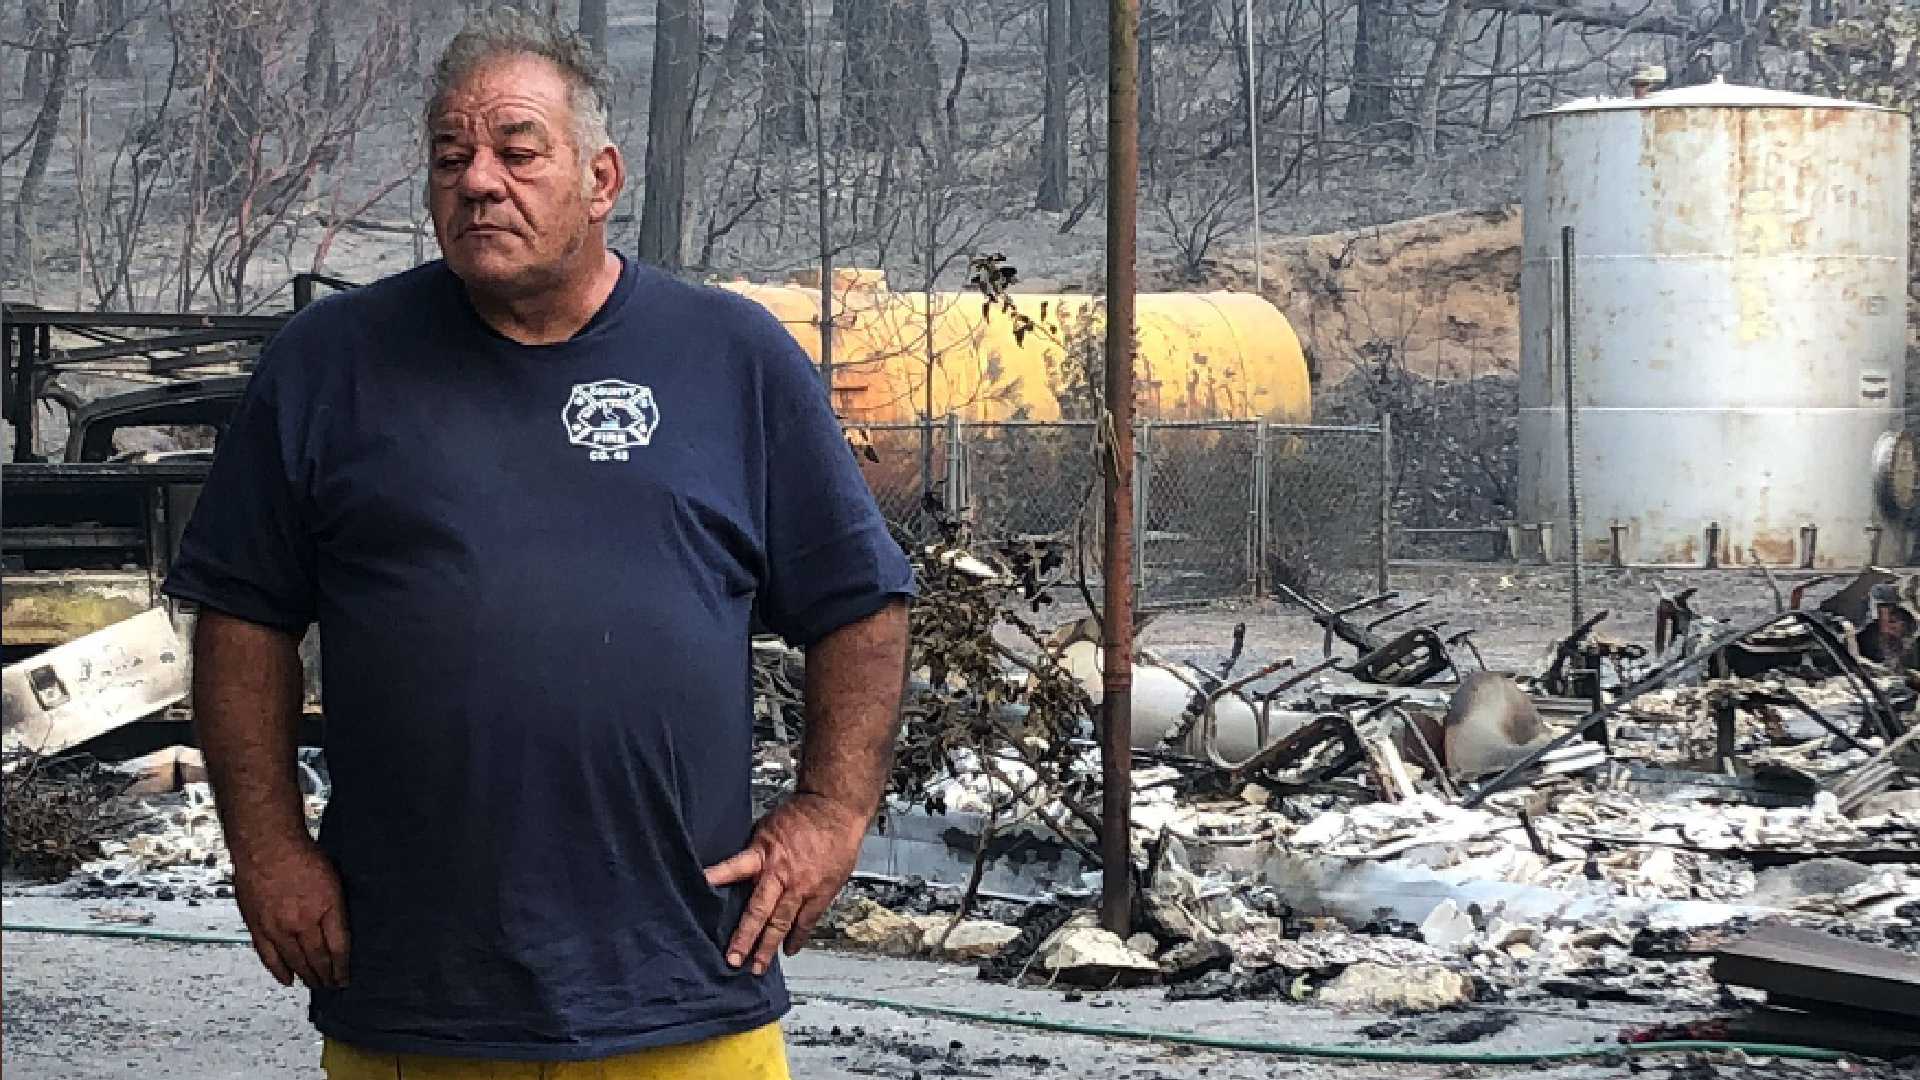 Volunteer fireChief Reed Rankin is seen in an area destroyed by the North Complex fire in Berry Creek. (KTXL)